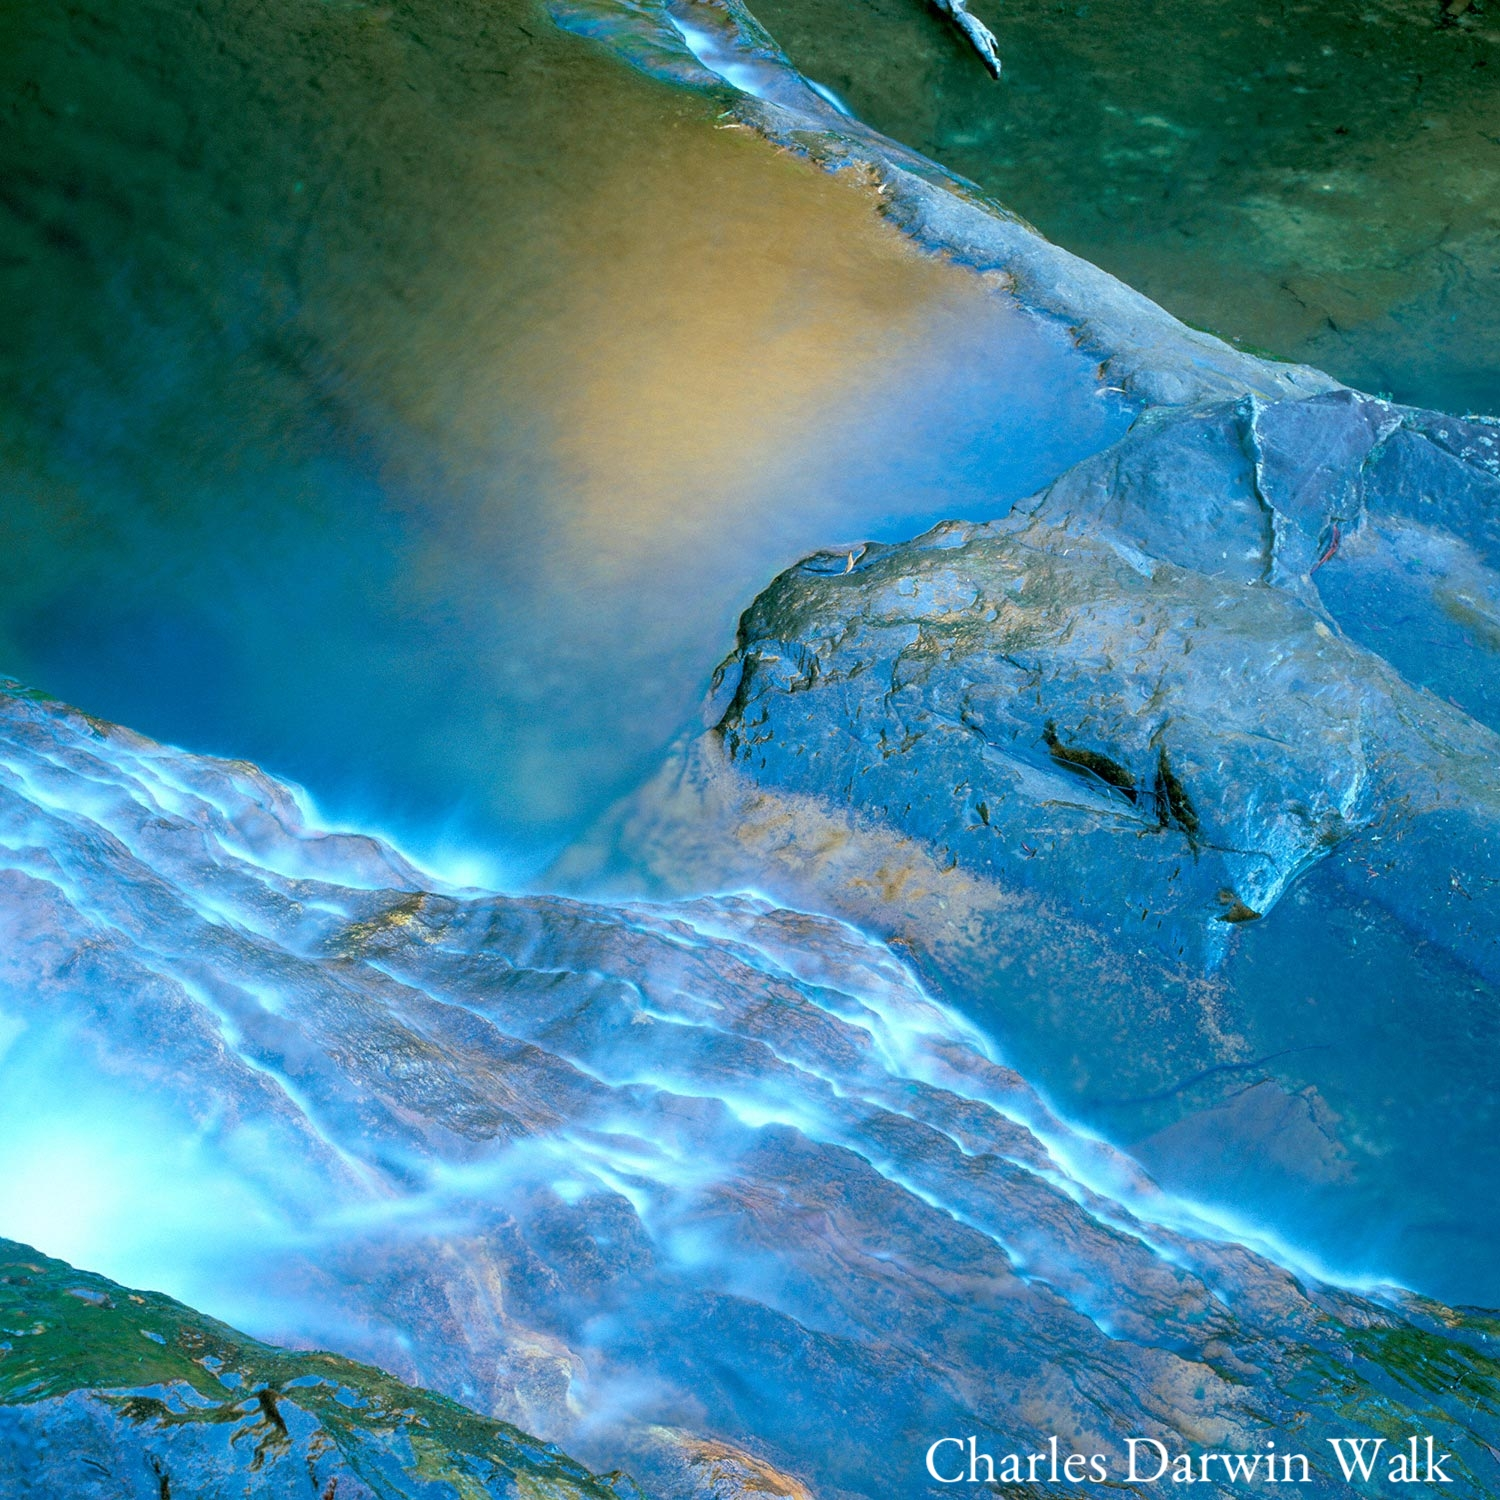 Warren-Hinder-LR-Square-Top-Of-Falls-Charles-Darwin-.jpg